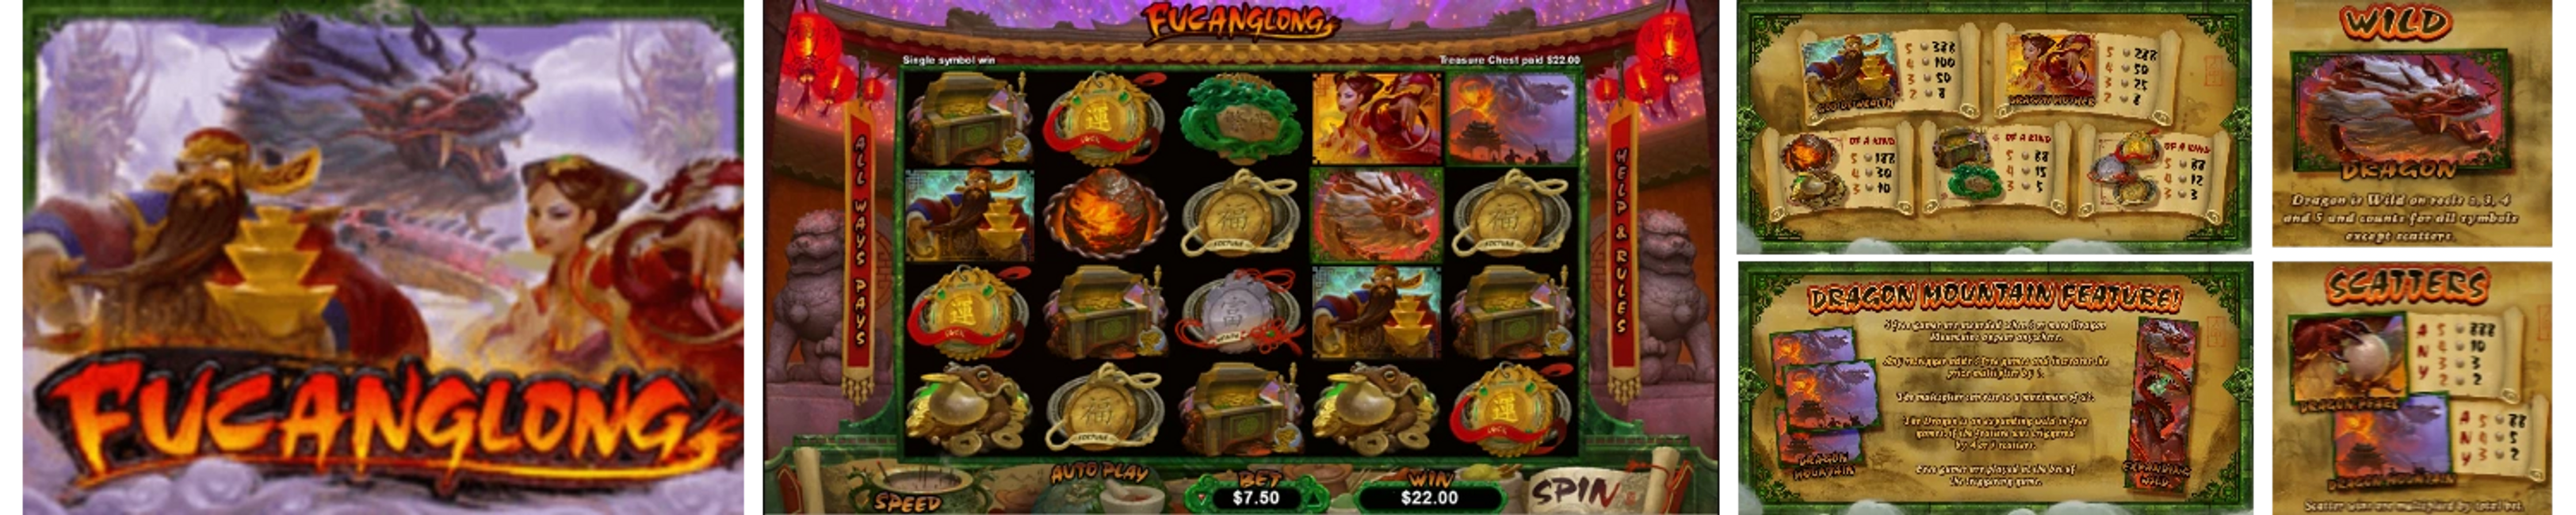 Fucanglong Video Slots Review